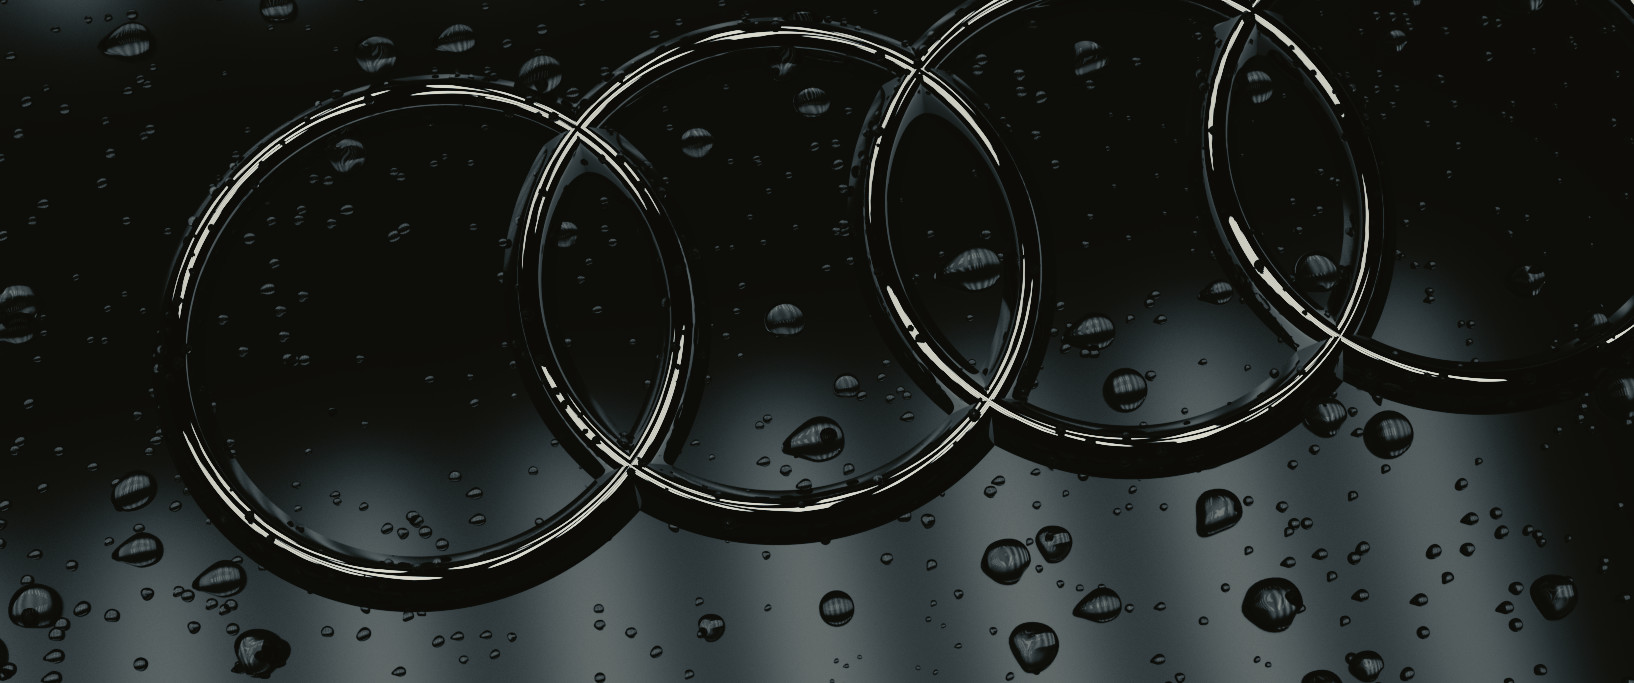 Artstation Audi Logo With Water Drops Jay Tailor